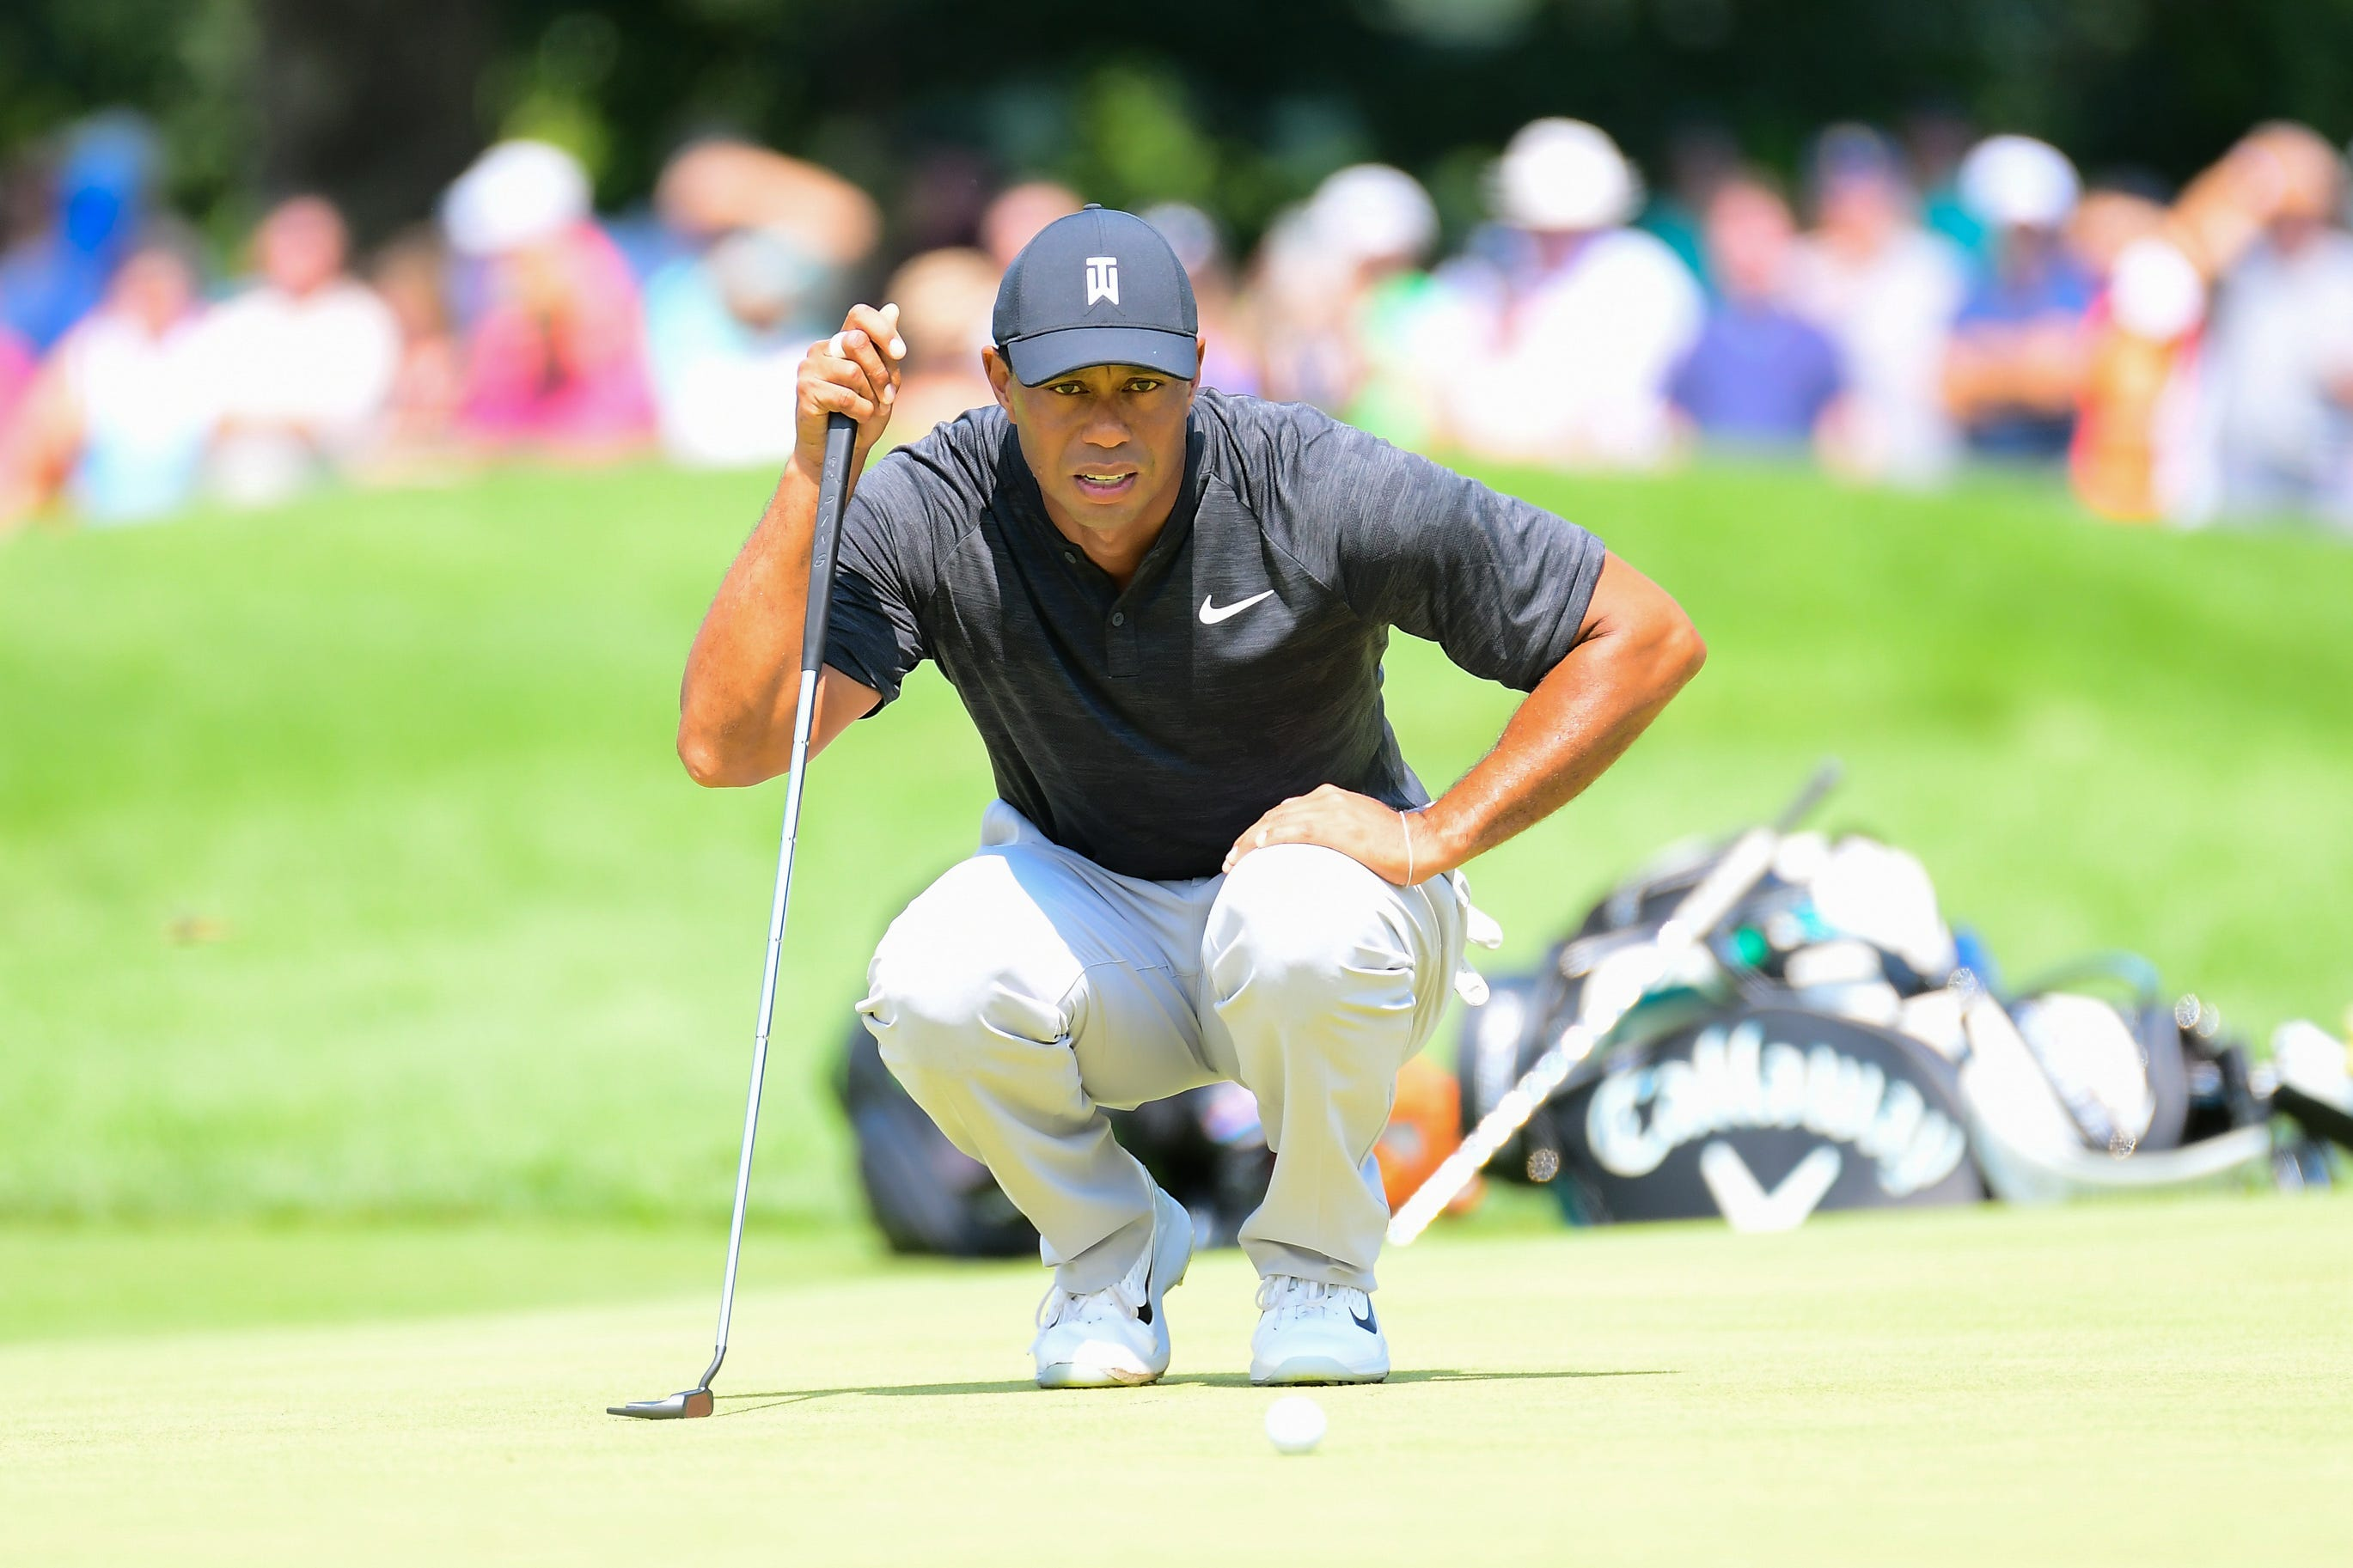 a9049426 Tiger Tracker: Follow Tiger Woods' Friday round shot-by-shot at the Northern  Trust 8 Months ago